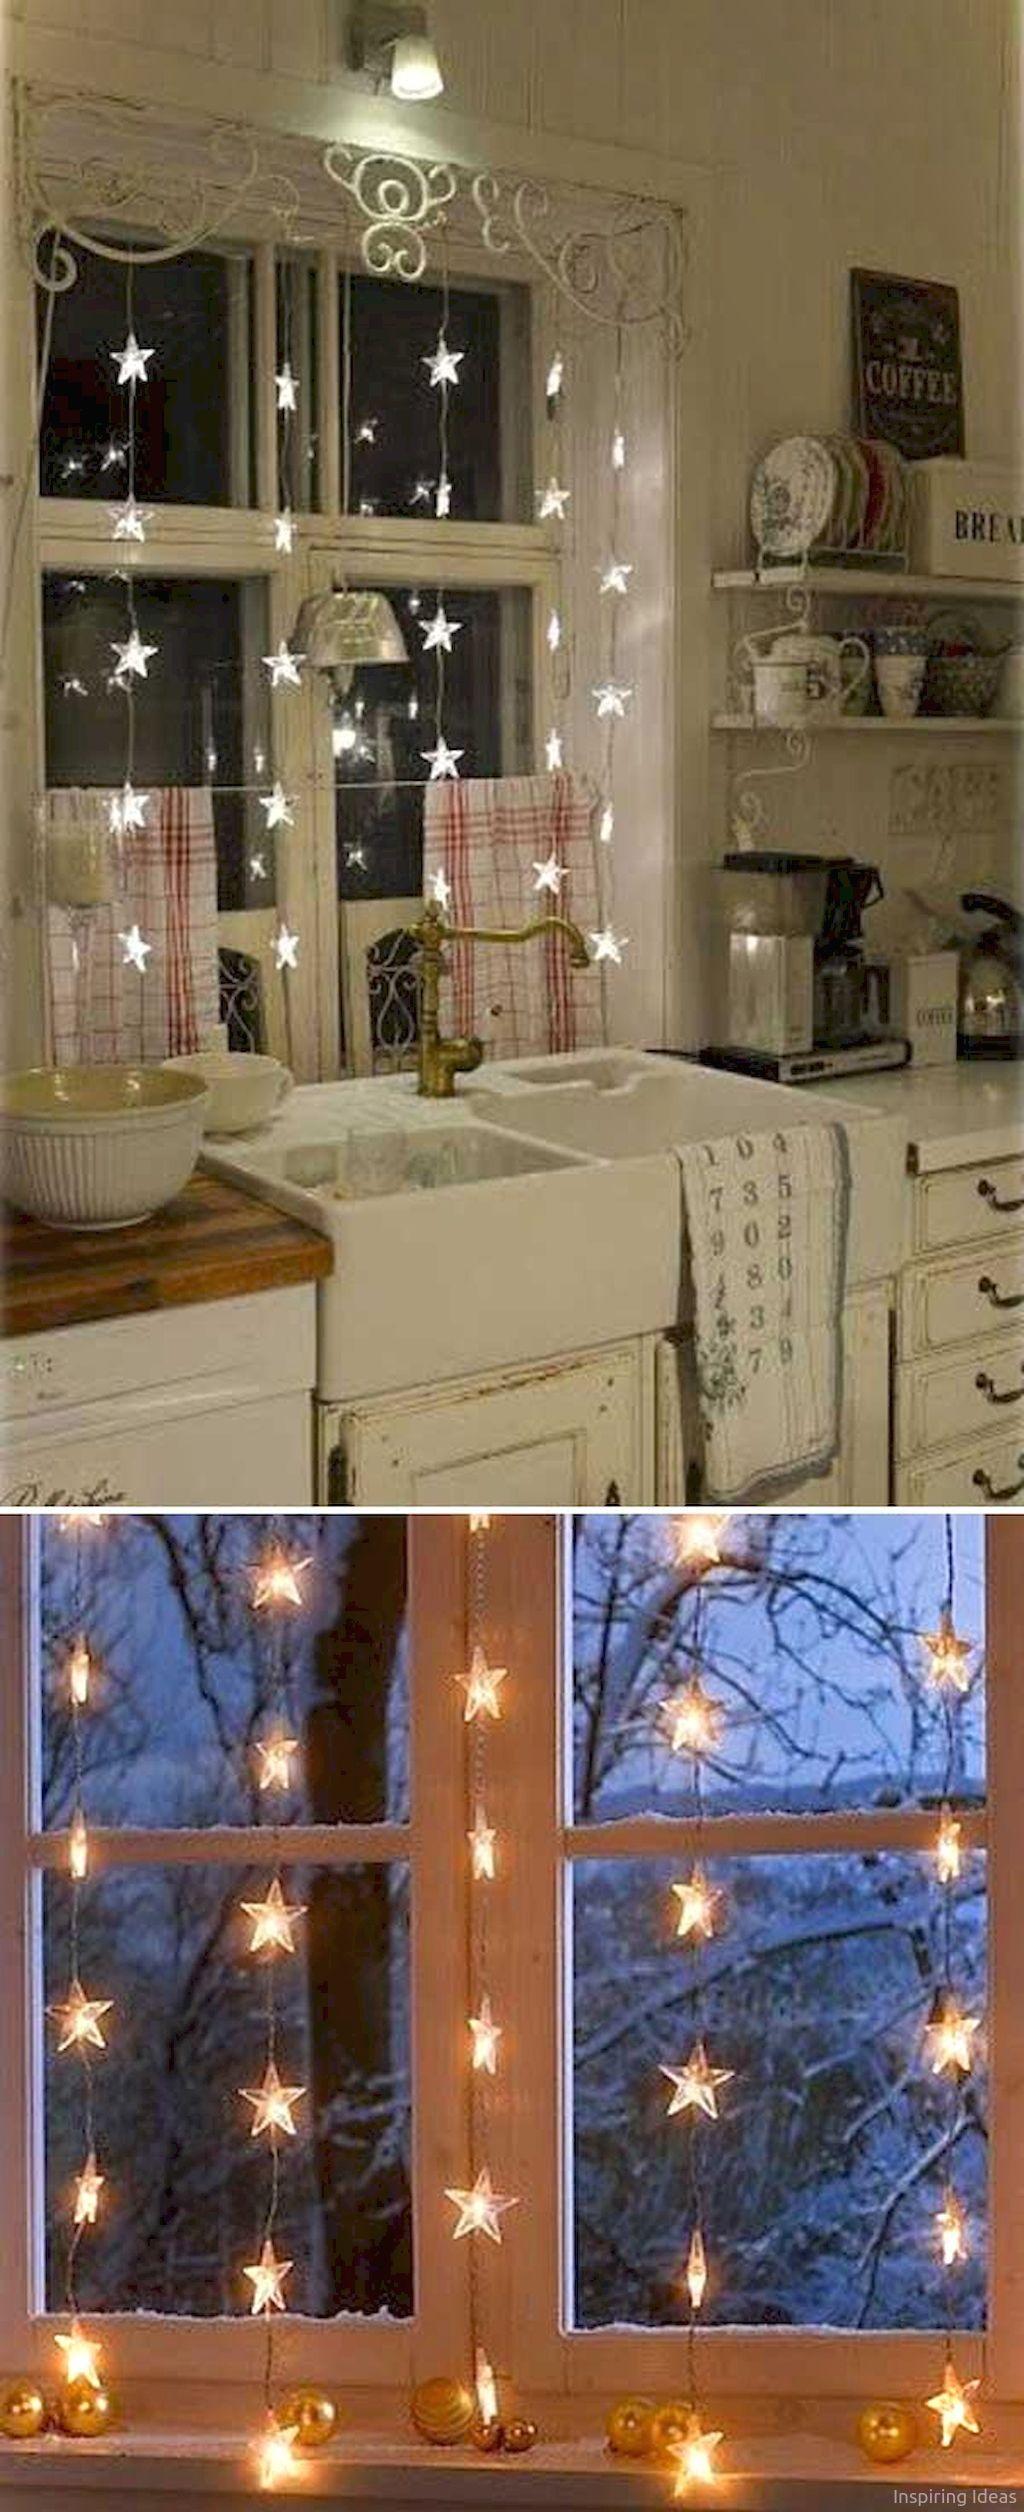 69 Simple Christmas Decorations Ideas for the Home